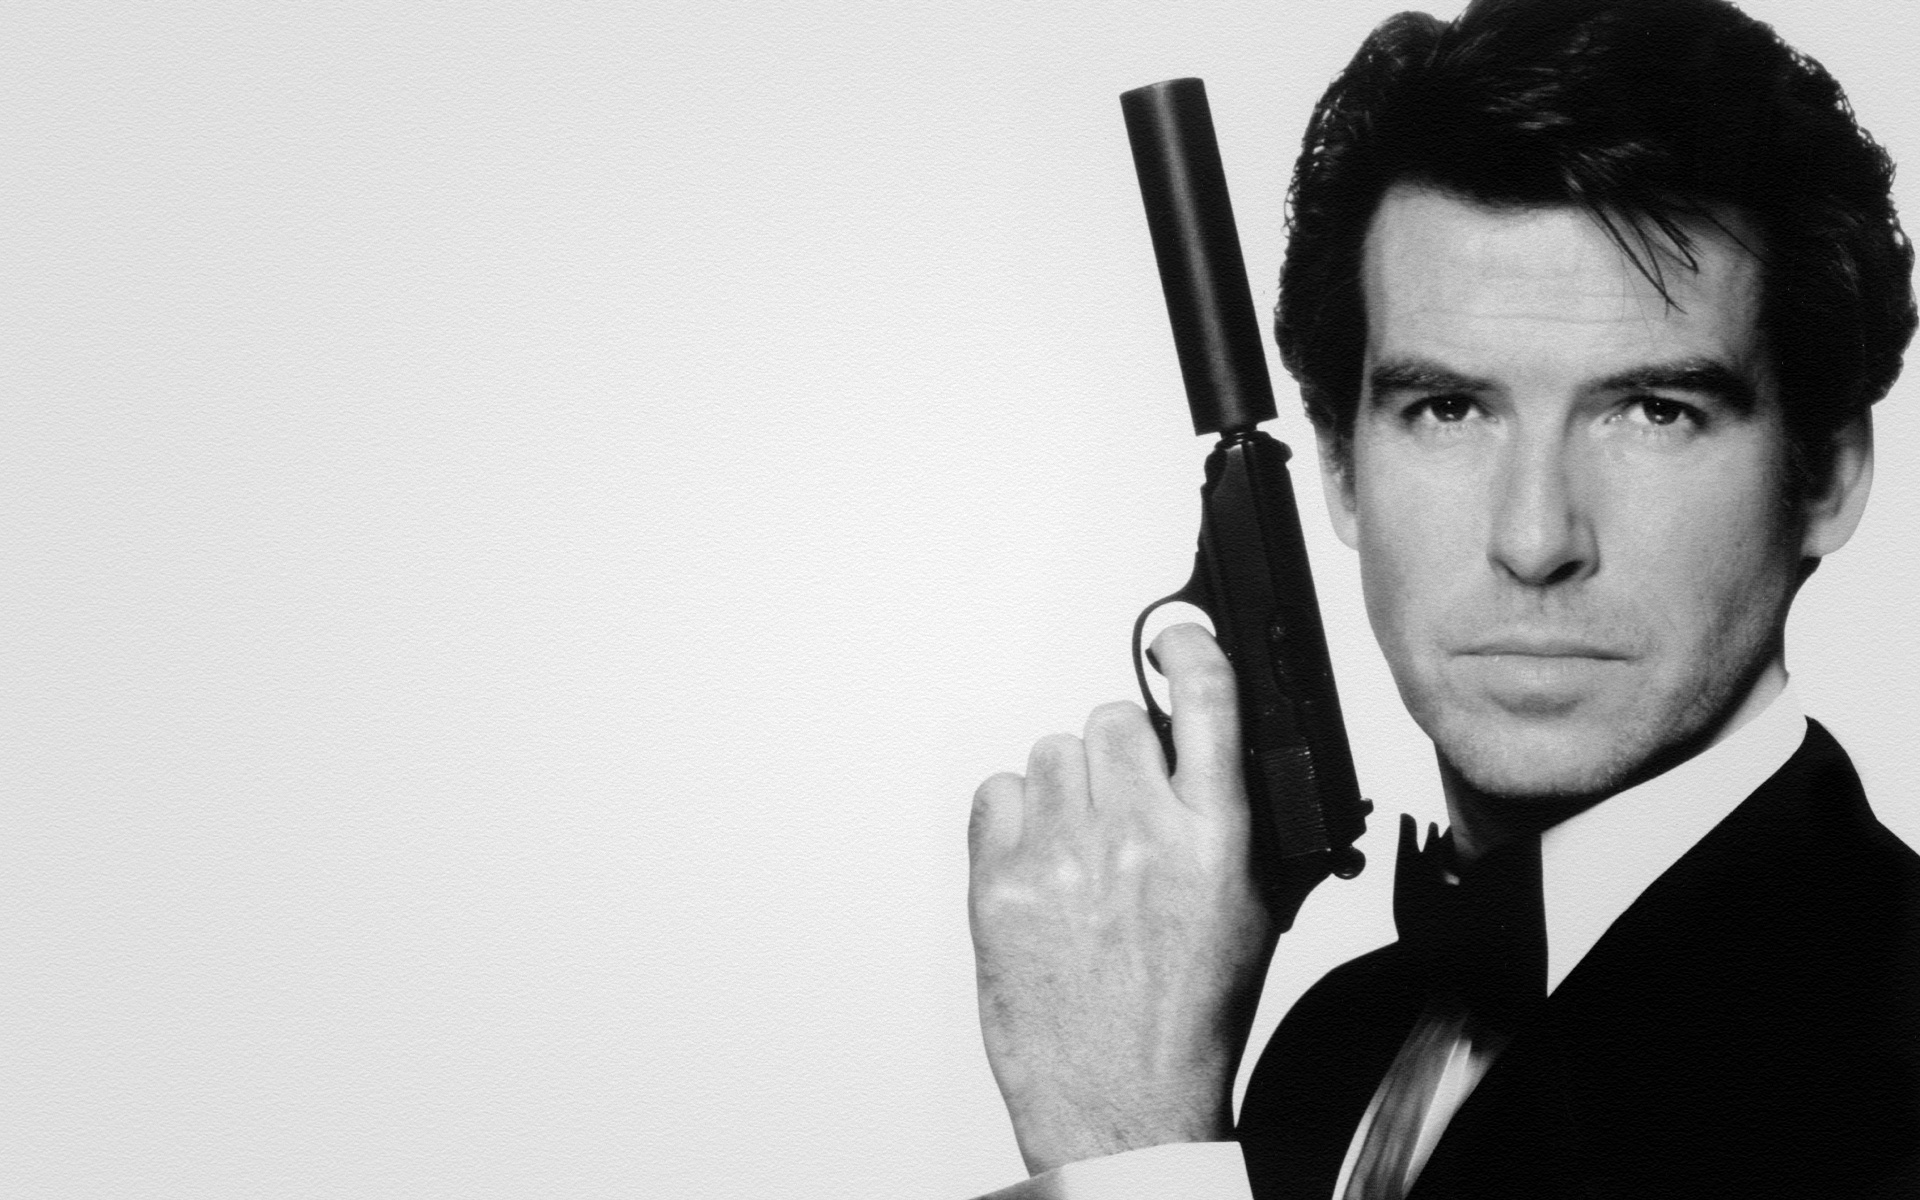 Pierce Brosnan Bond